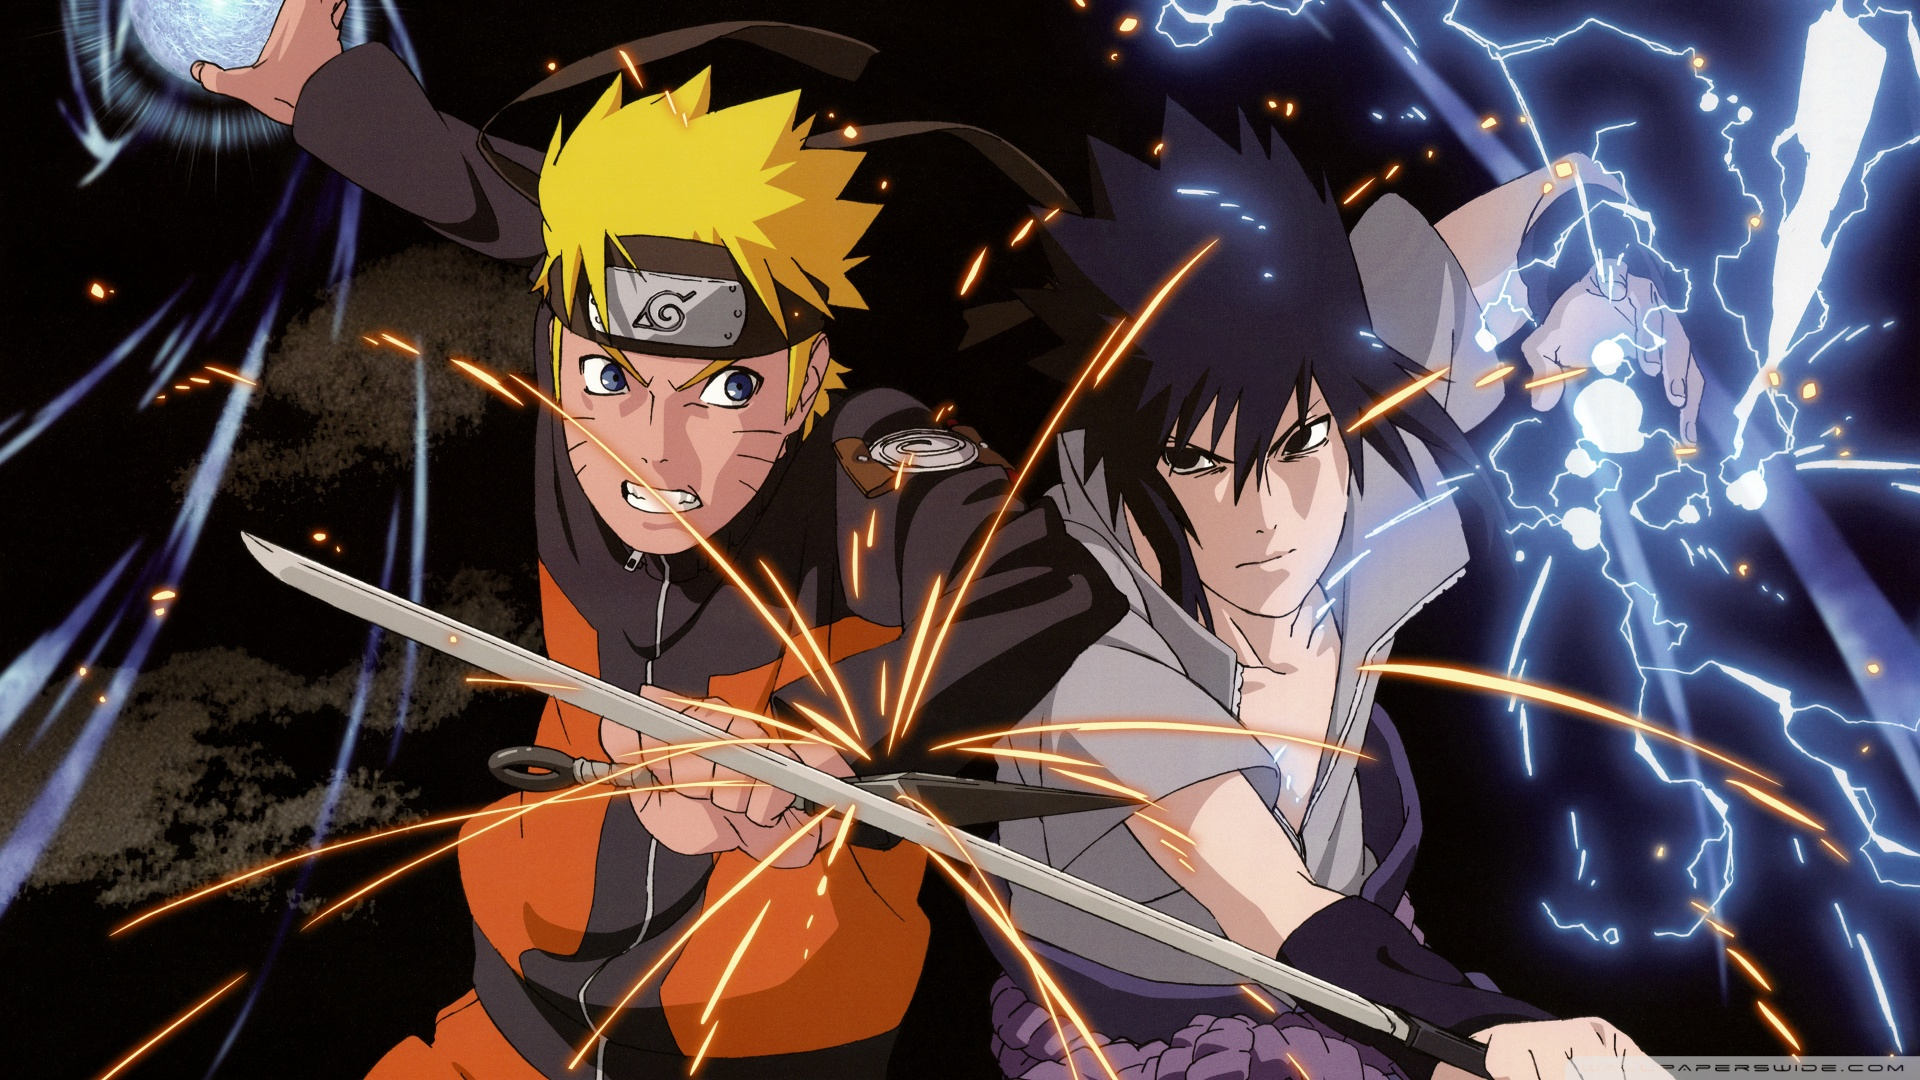 naruto wallpapers photos and desktop backgrounds up to 8k